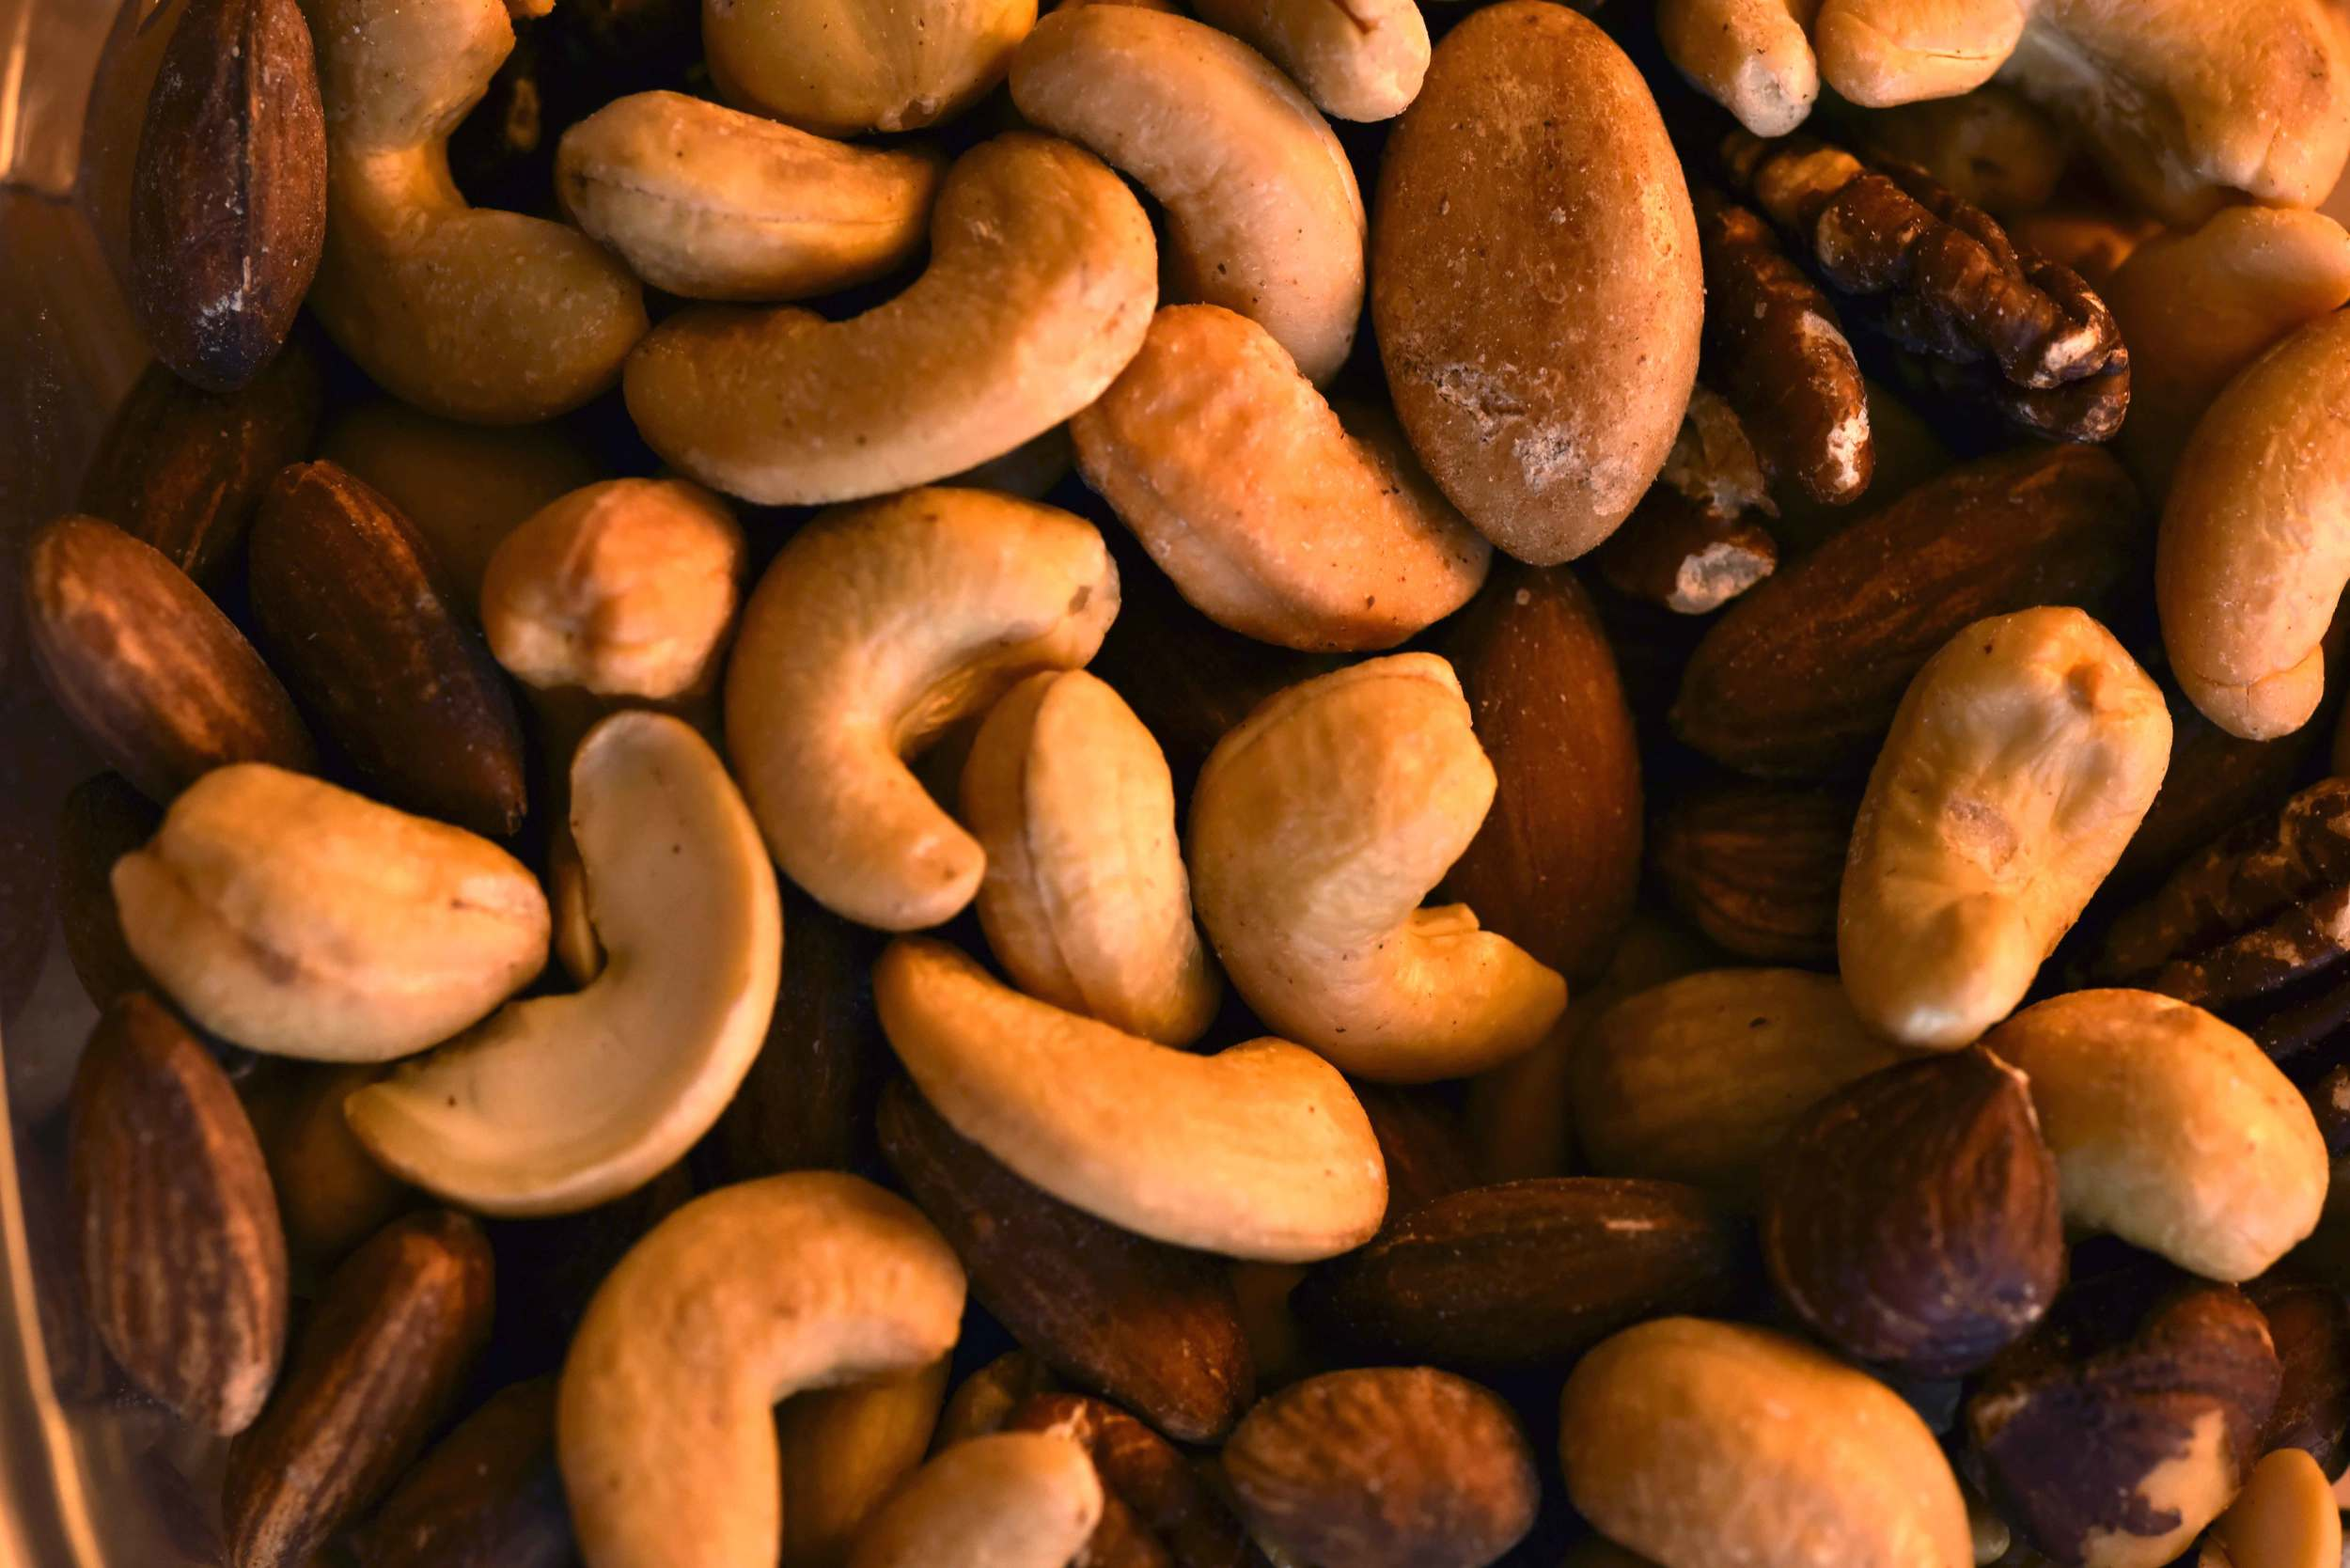 Roasted mixed nuts makes for a healthy snack! Image©gunjanvirk